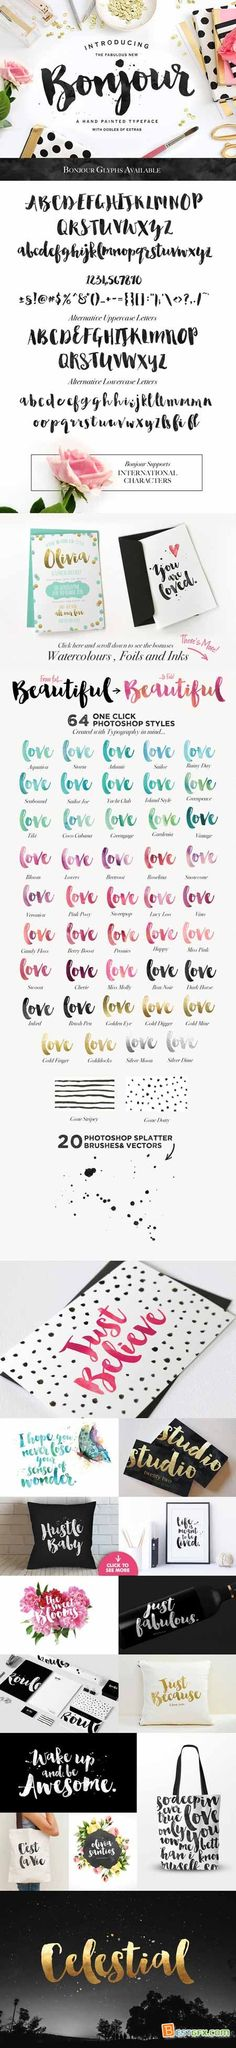 Creativemarket Bonjour! Typeface with Extras 221972